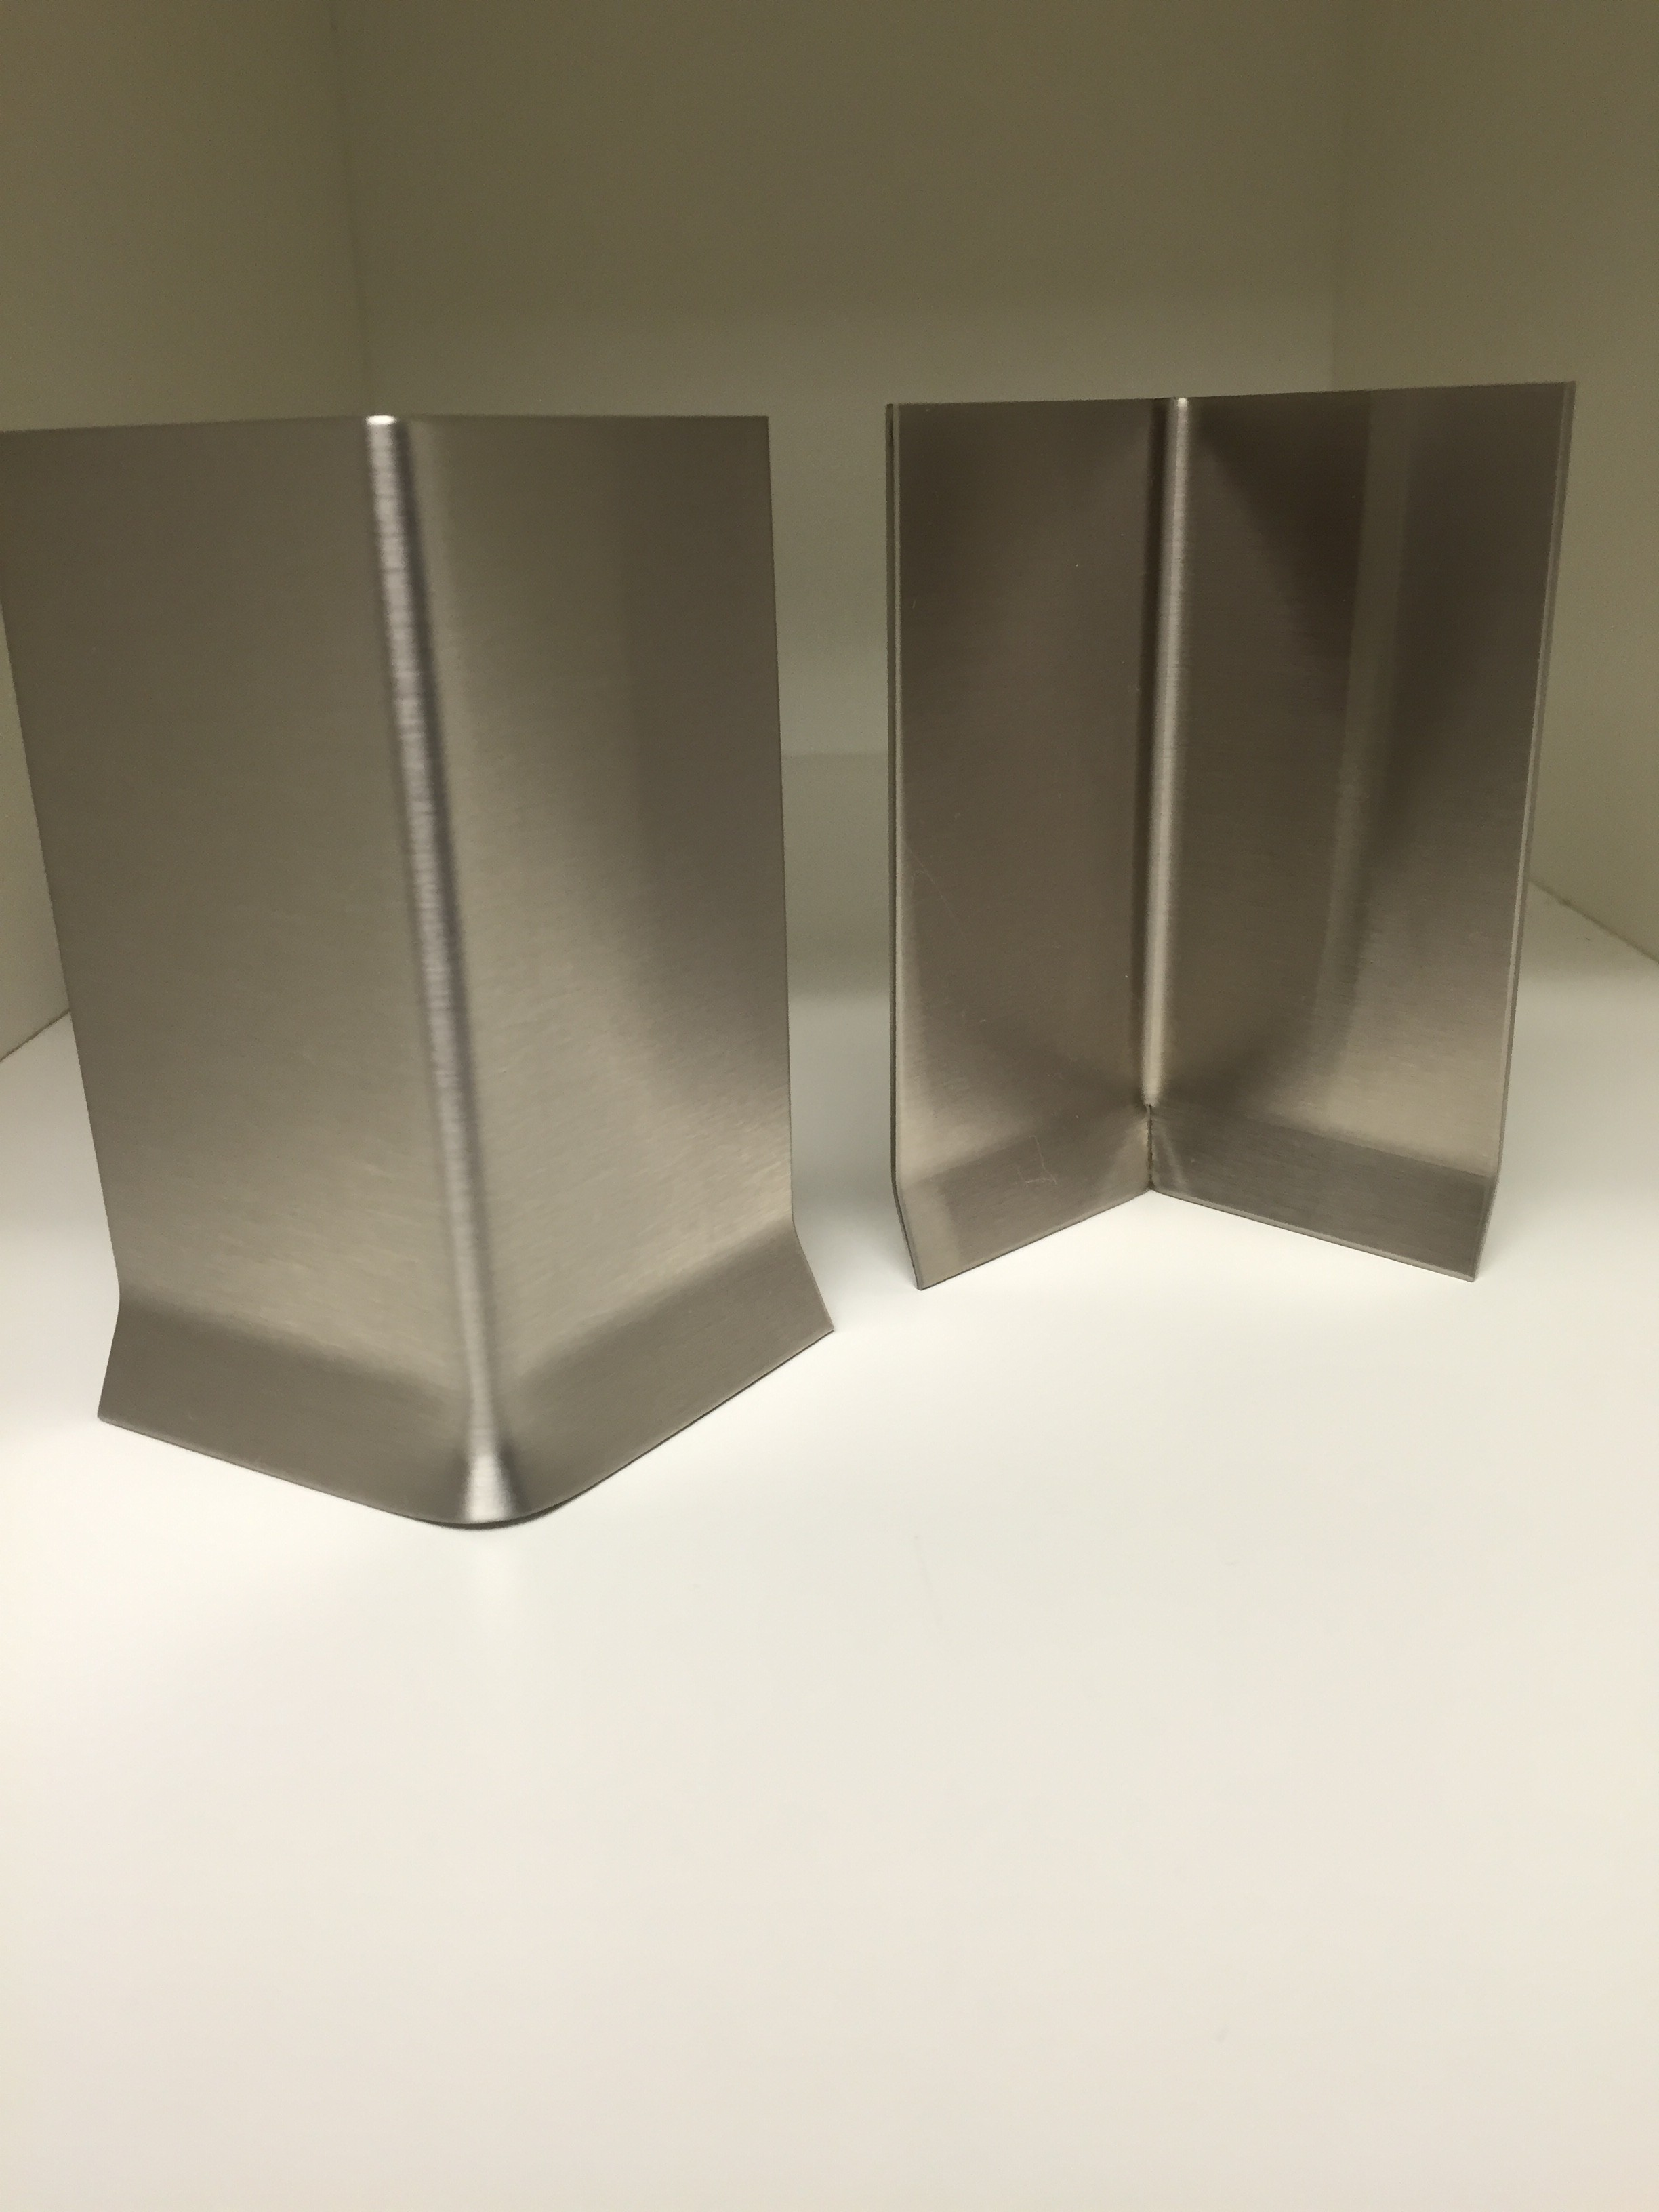 Stainless Steel Cove Straight Base Corners Base Products